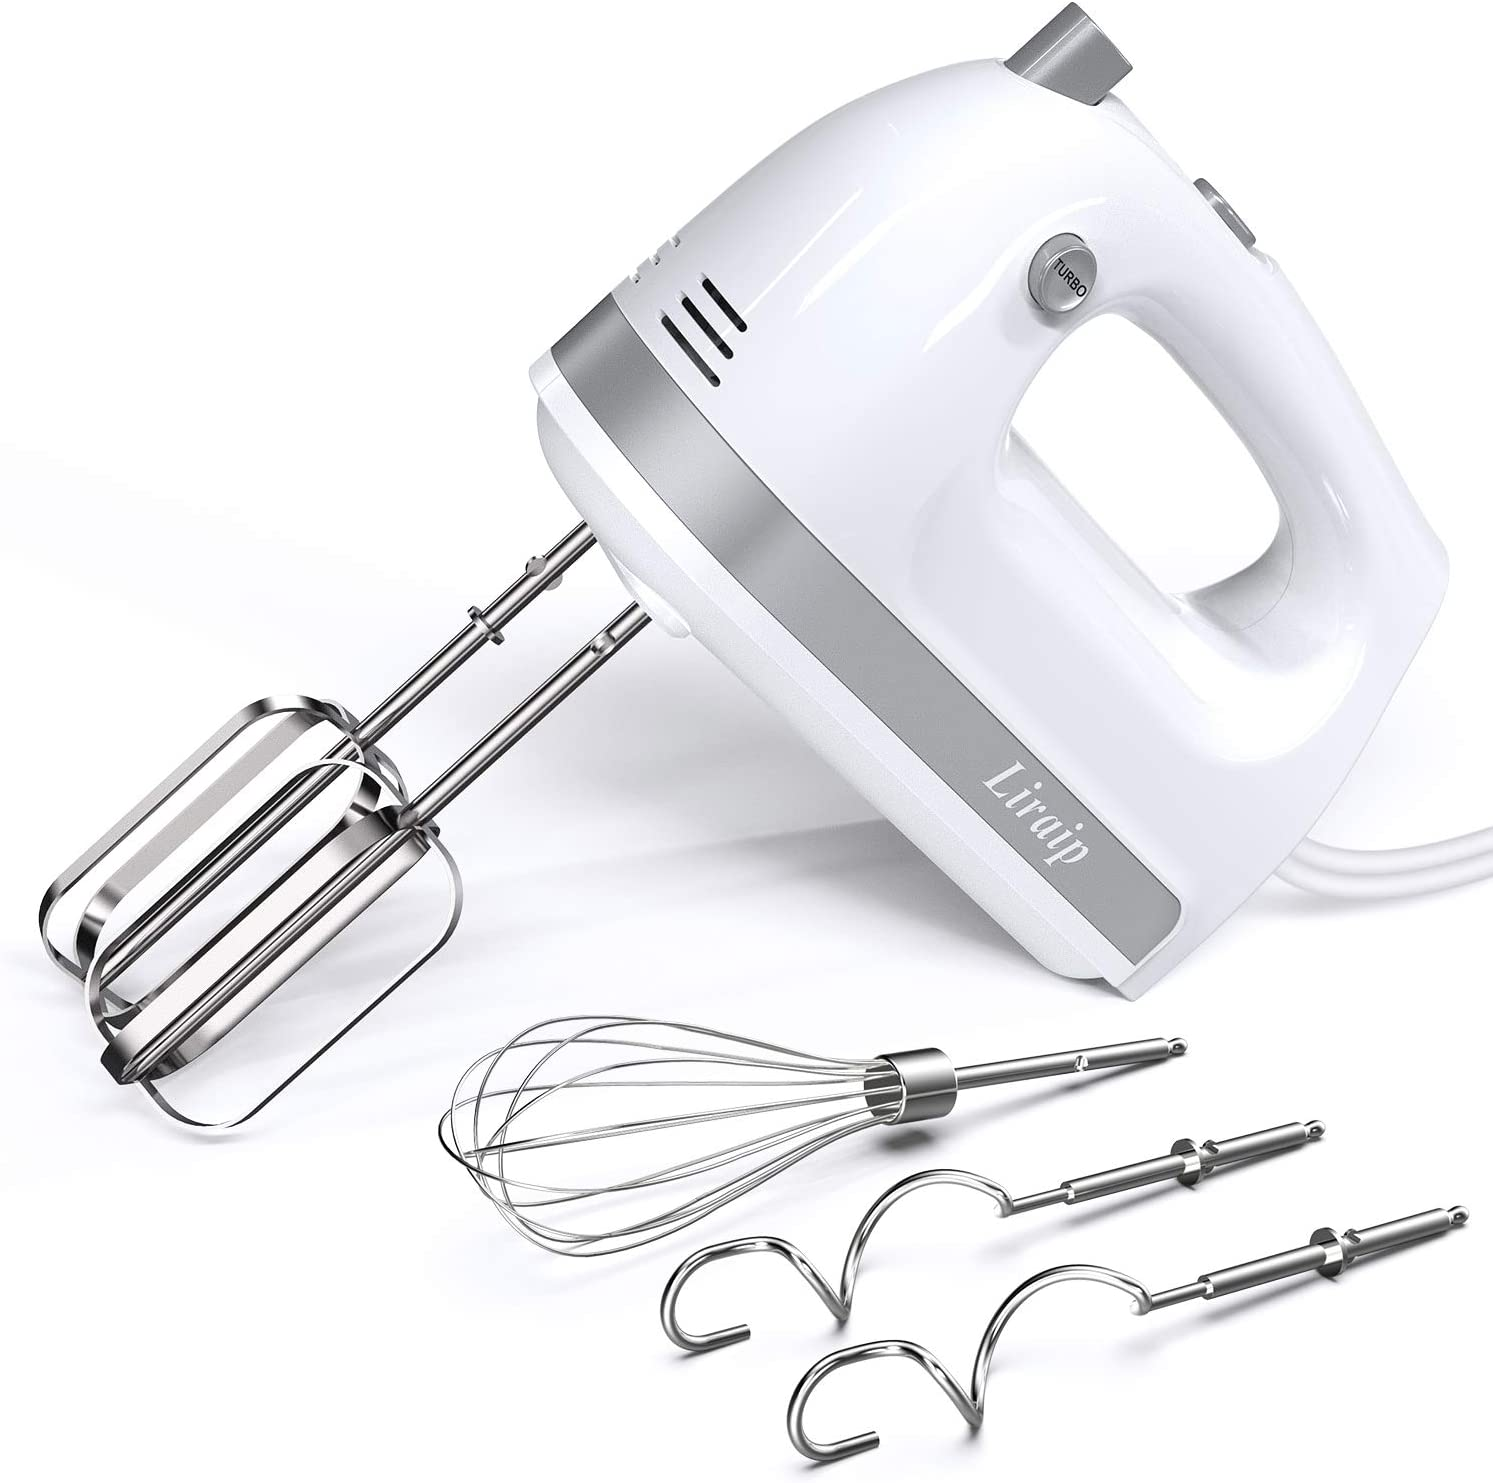 Liraip Hand Mixer Sale special ! Super beauty product restock quality top! price Electric 5 Turbo 400W Speed with Stainless